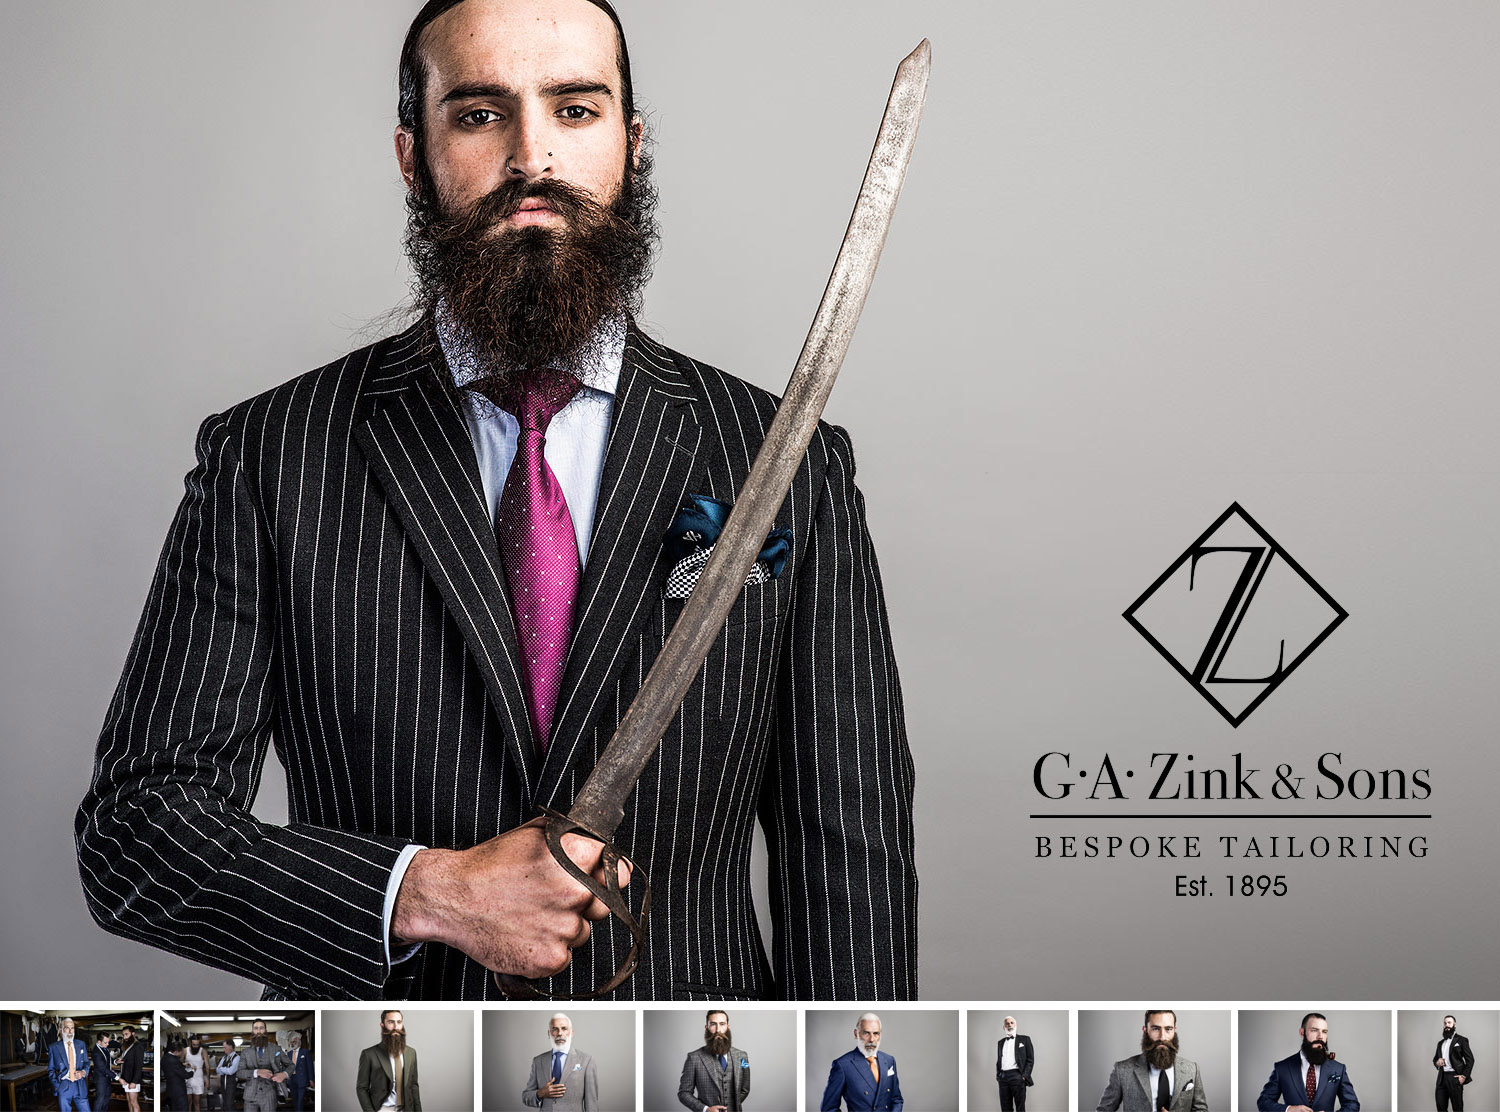 Zink & Sons - Client: Zink & SonsMedia: Still & VideoUsage: Print & WebThis shoot was all about the bearded gentlemen. With a casting call sent out across facebook we found 4 bearded characters that could pull off the look. We shot in a temporary studio set up in the Zink & Sons showroom whilst our talent smoked cigars, drunk Whiskey and played with swords. An interesting combination.